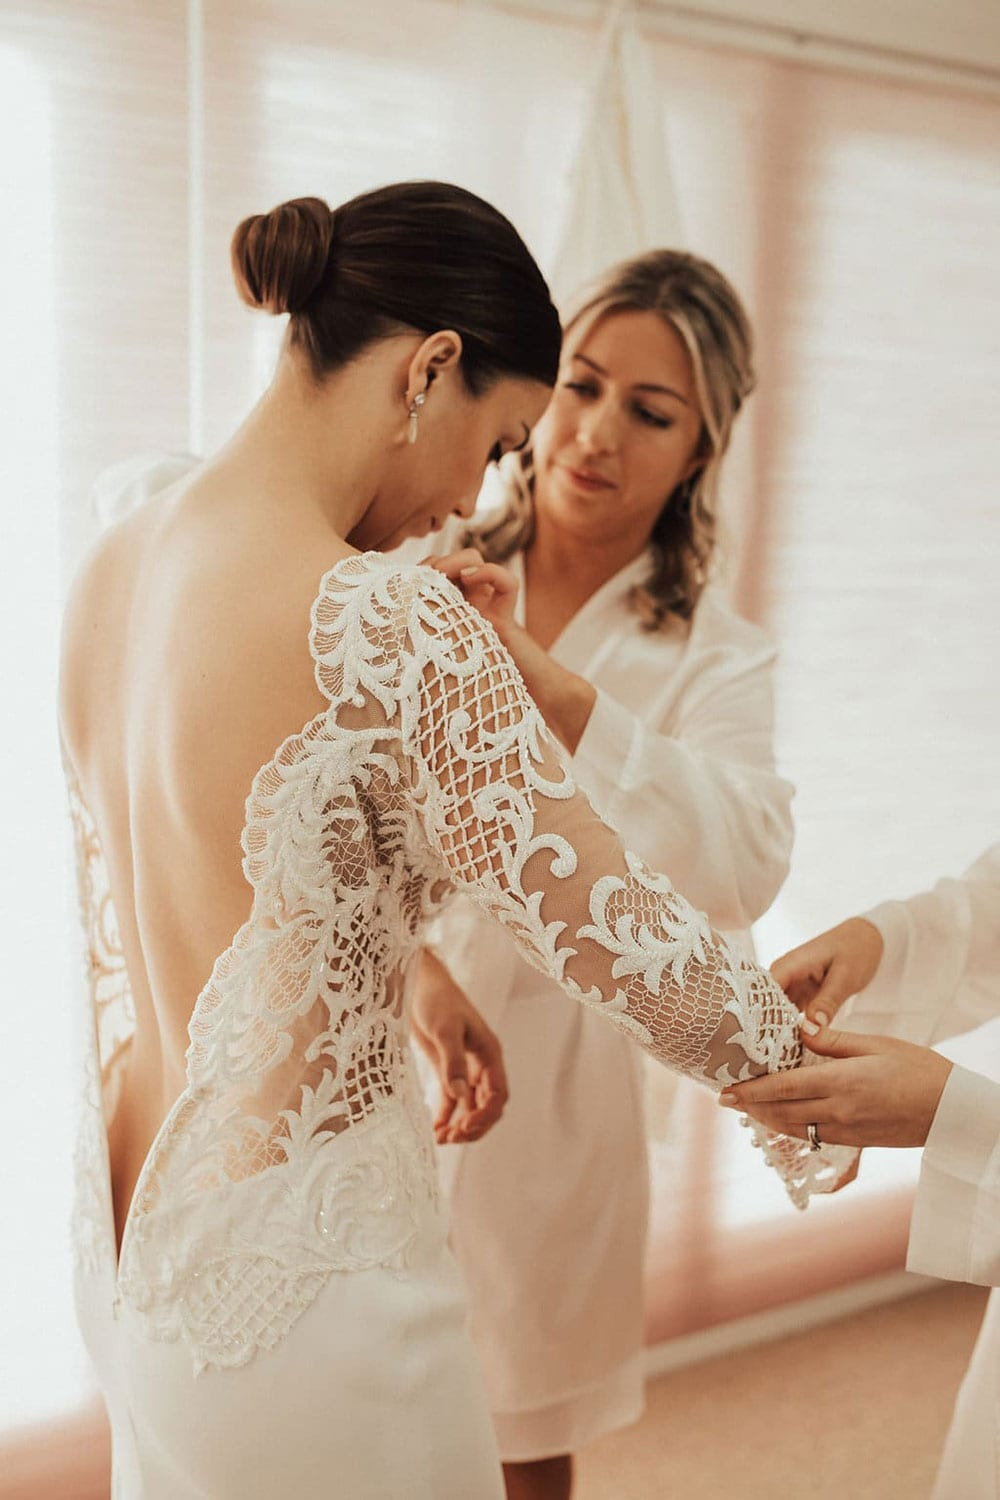 Real Weddings | Vinka Design | Real Brides Wearing Vinka Gowns | Olivia and Ben - Olivia getting ready, beautiful detail of bodice with nude base and lace detail and low back